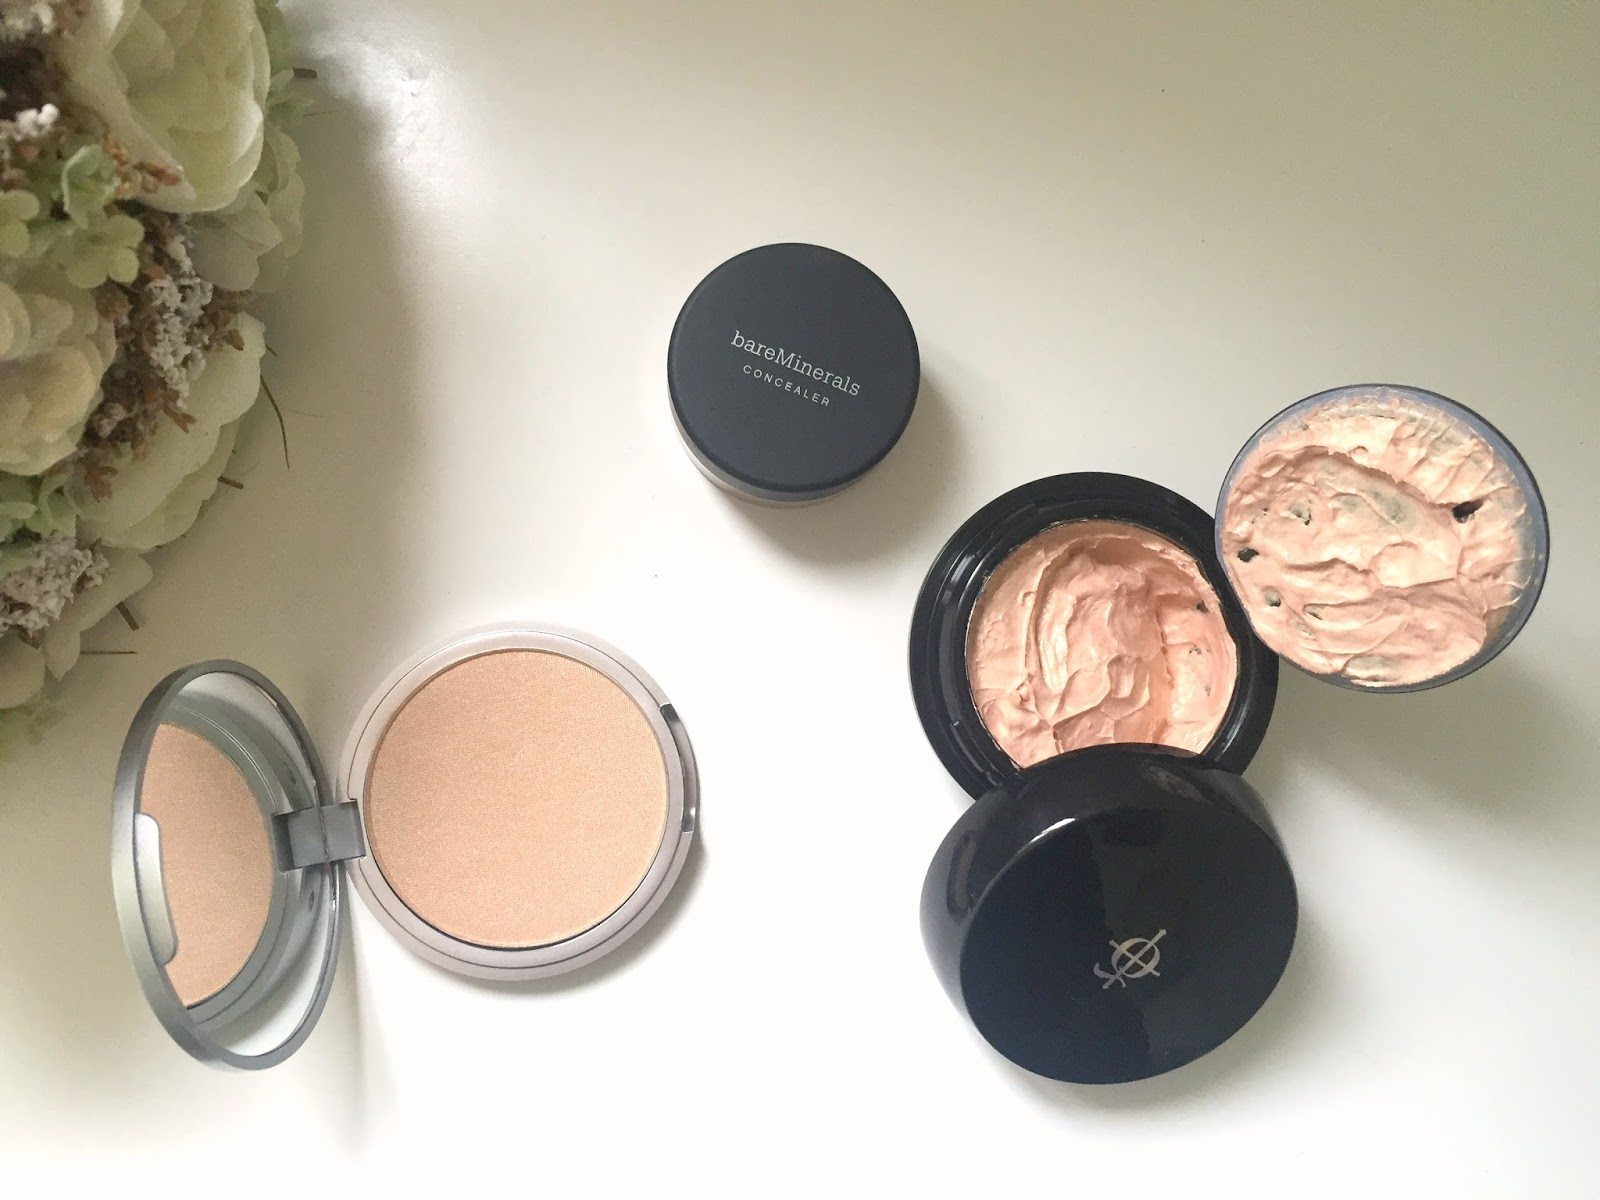 Glow Getting Look Fantastic Haul || Illamasqua, The Balm and Bare Minerals with swatches